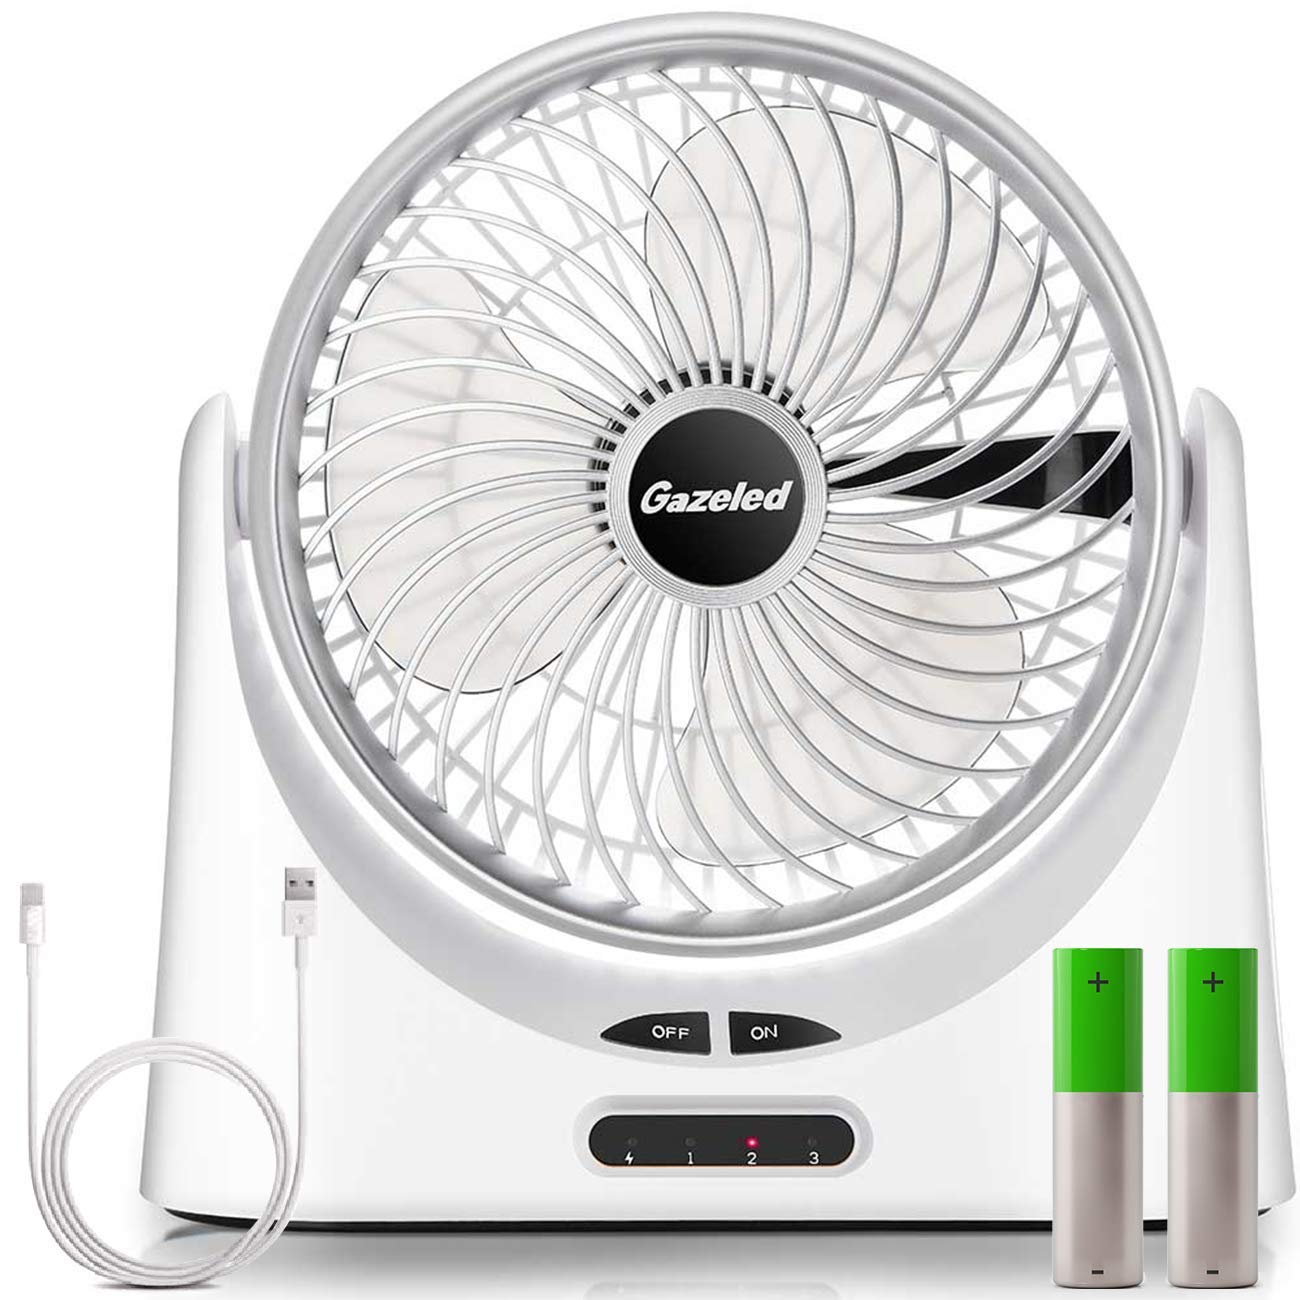 Rechargeable Battery Operated Fan, Portable USB Desk Fan, 7 inch 18650 Battery Fan, Quiet USB Powered Personal Fans with 5000mAh Battery(5-17H), LED light, 3 Speeds, for Camping, Traveling,Home,Office